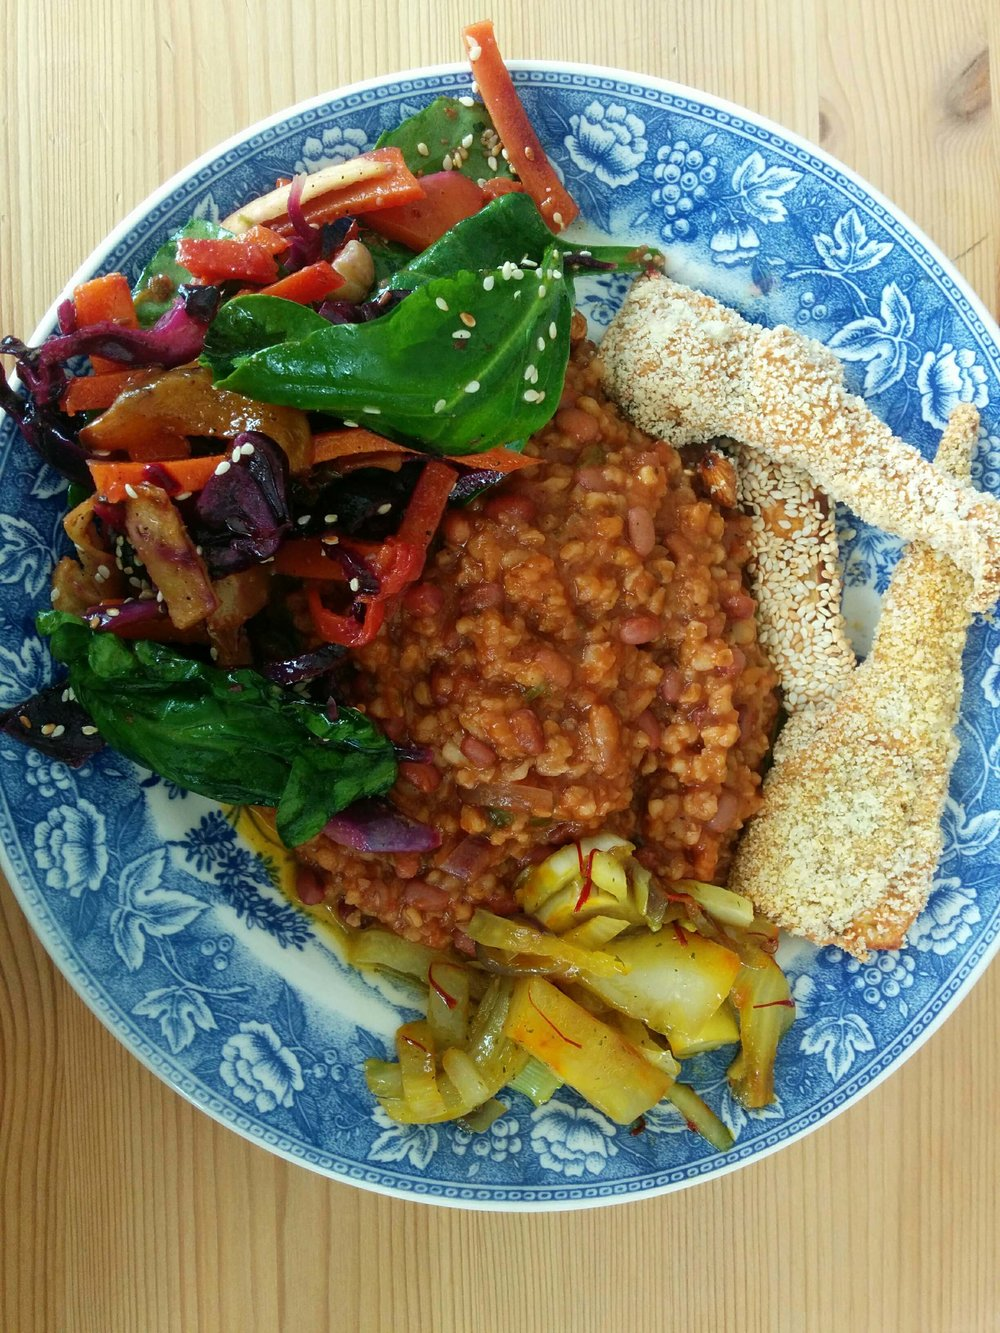 Here, breaded parsnip the Nøsen way, served with a vegan adzuki beans Chili, a roasted vegetable salad and saffron stir-fried fennel.